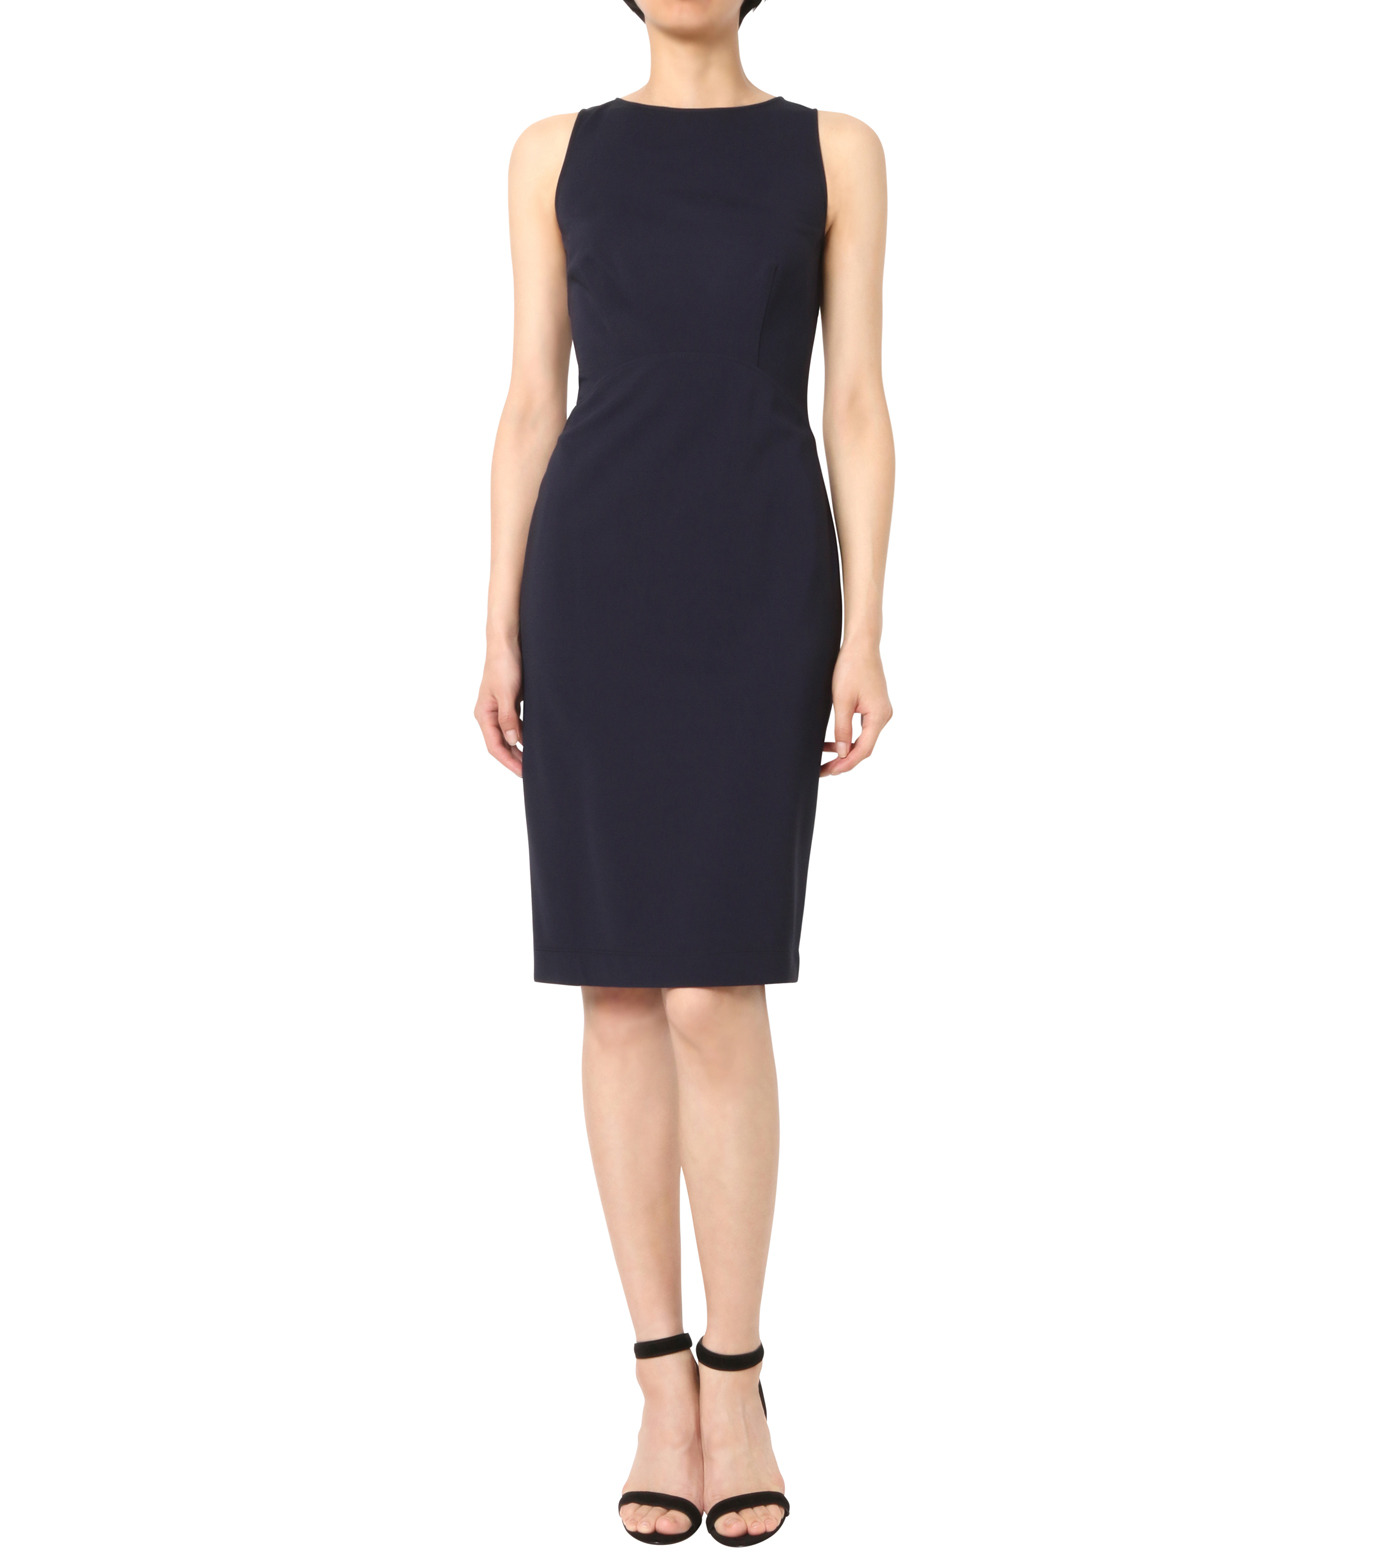 Altuzarra(アルトゥザラ)のFitted Stretch Dress-NAVY(ワンピース/one piece)-316-319-452-93 拡大詳細画像1